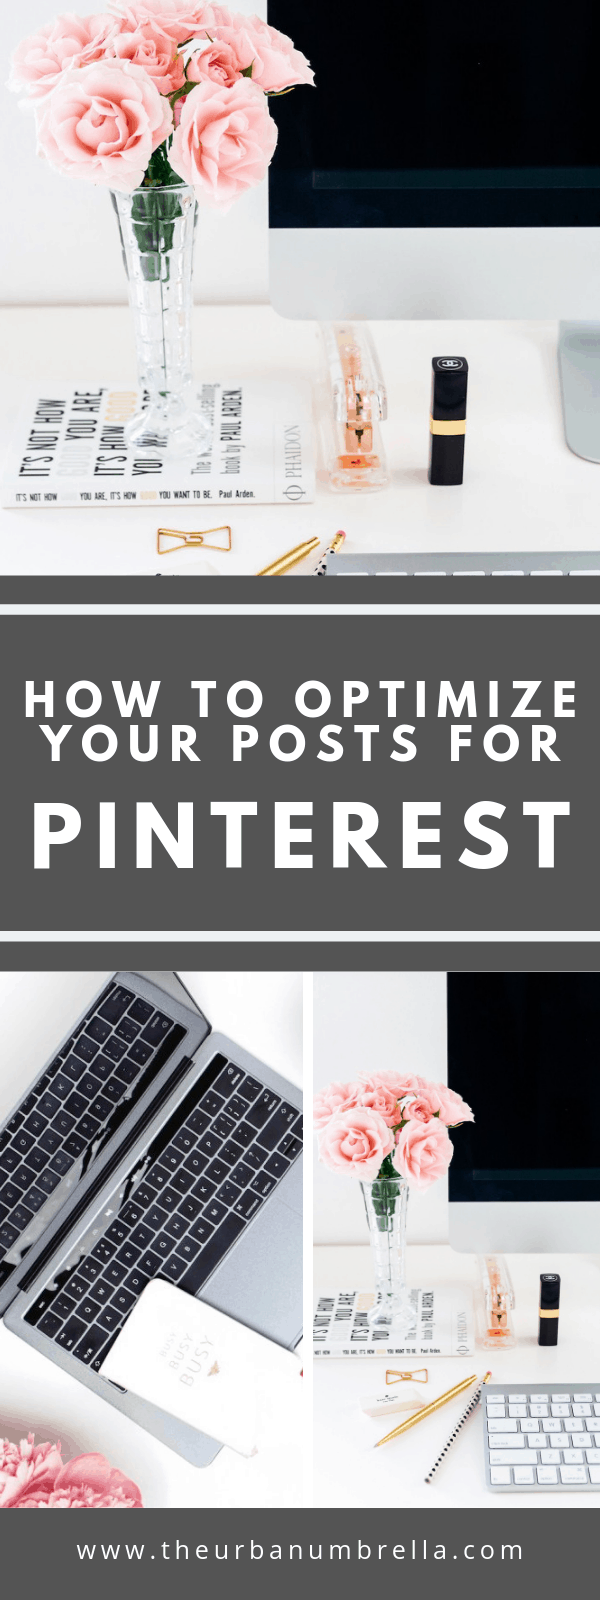 How to Optimize Your Blog Post Images for Pinterest